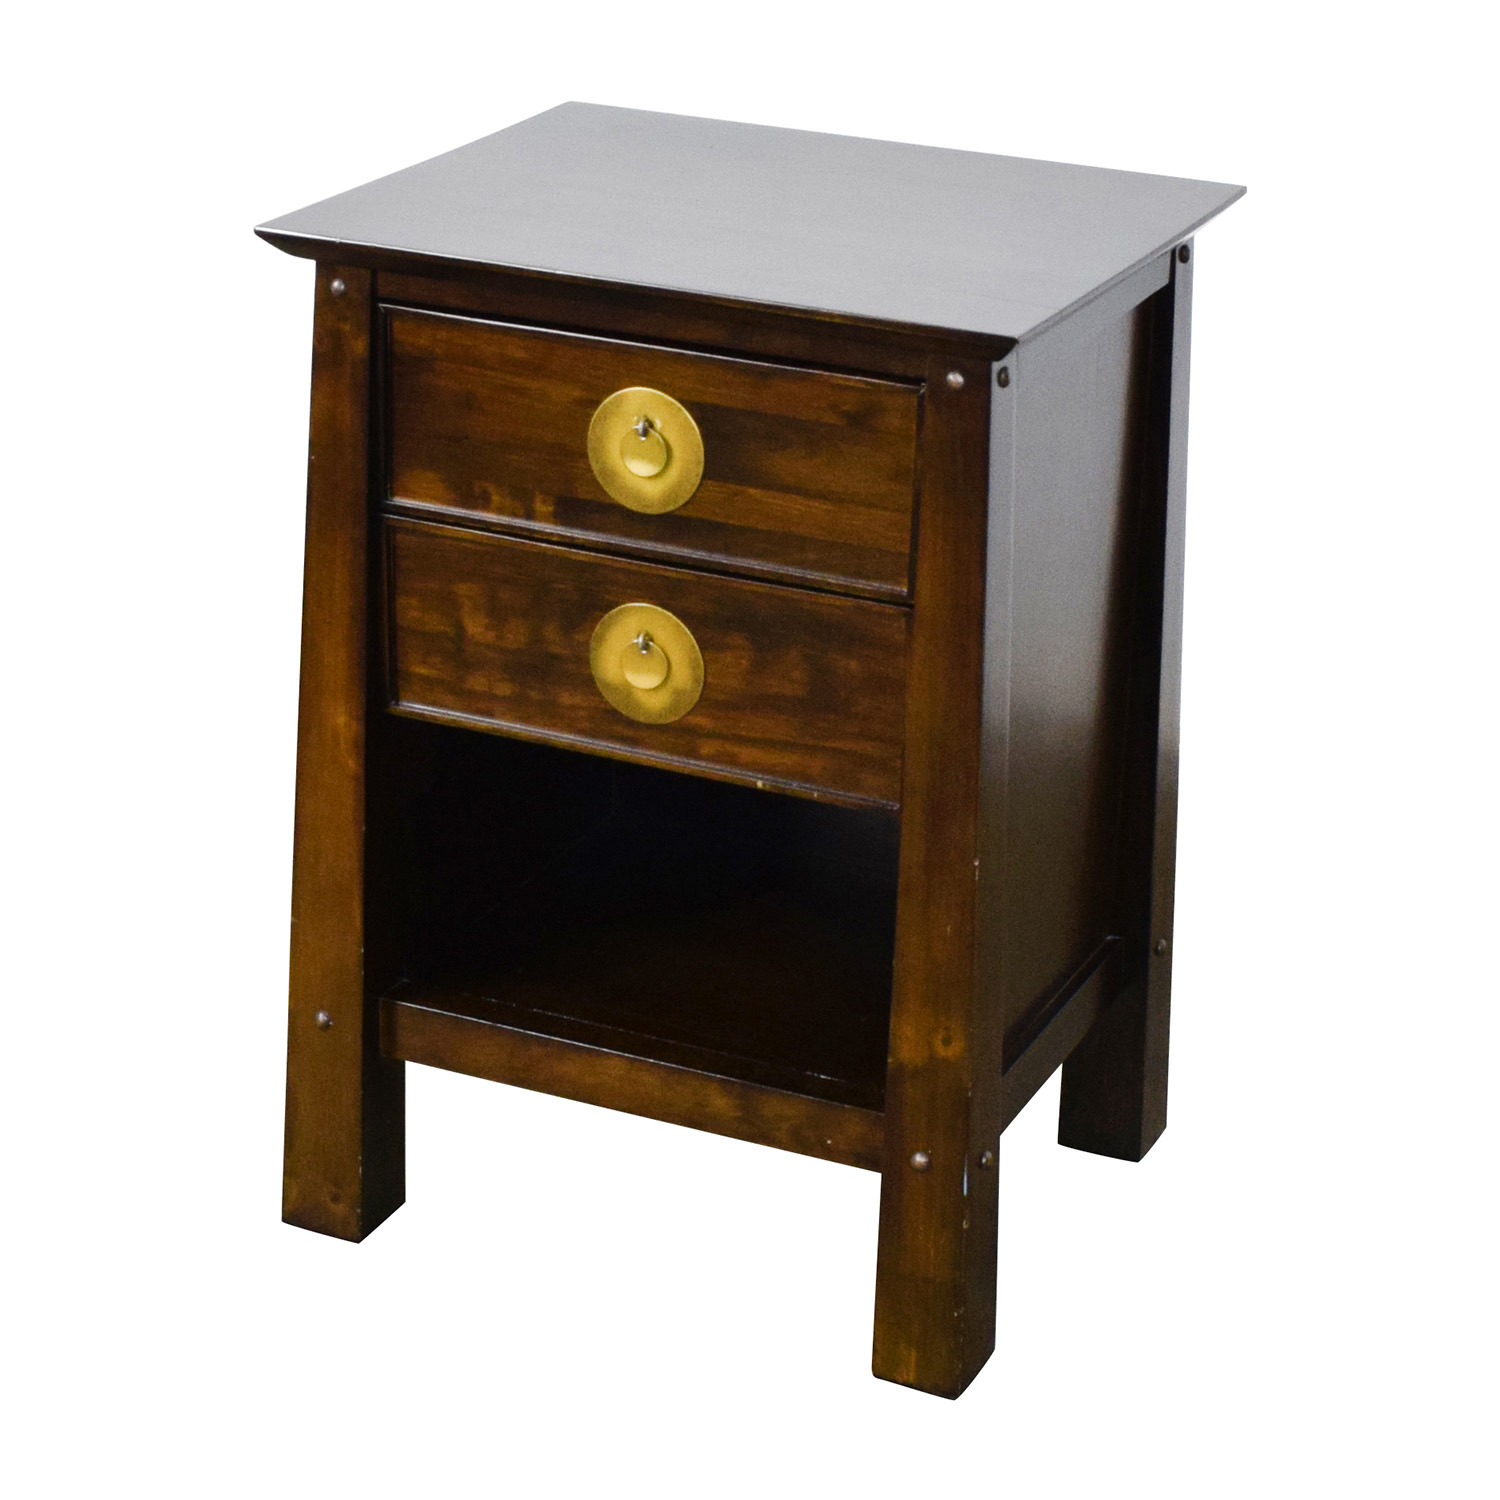 79 Off Pier 1 Imports Pier 1 Imports Shanghai Collection Espresso Nightstand Tables